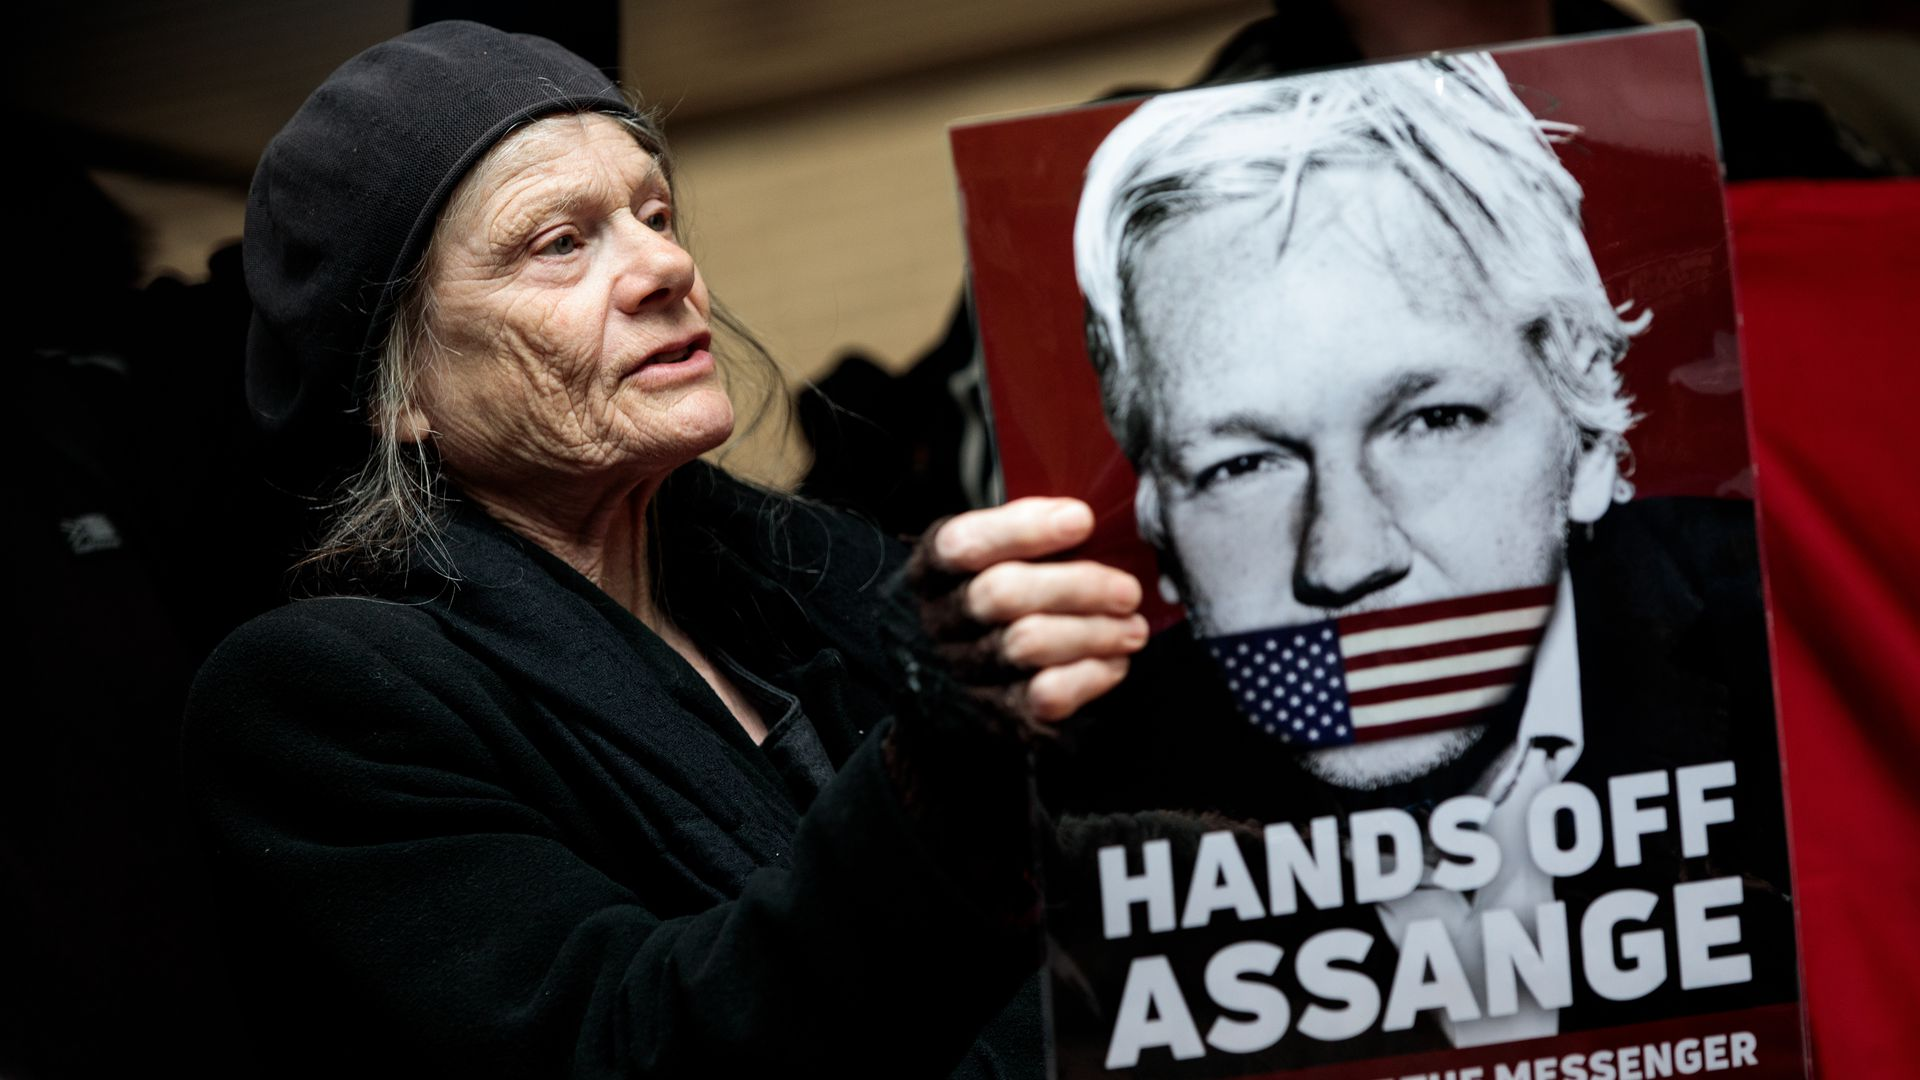 Protestors asking for Julian Assange to be freed